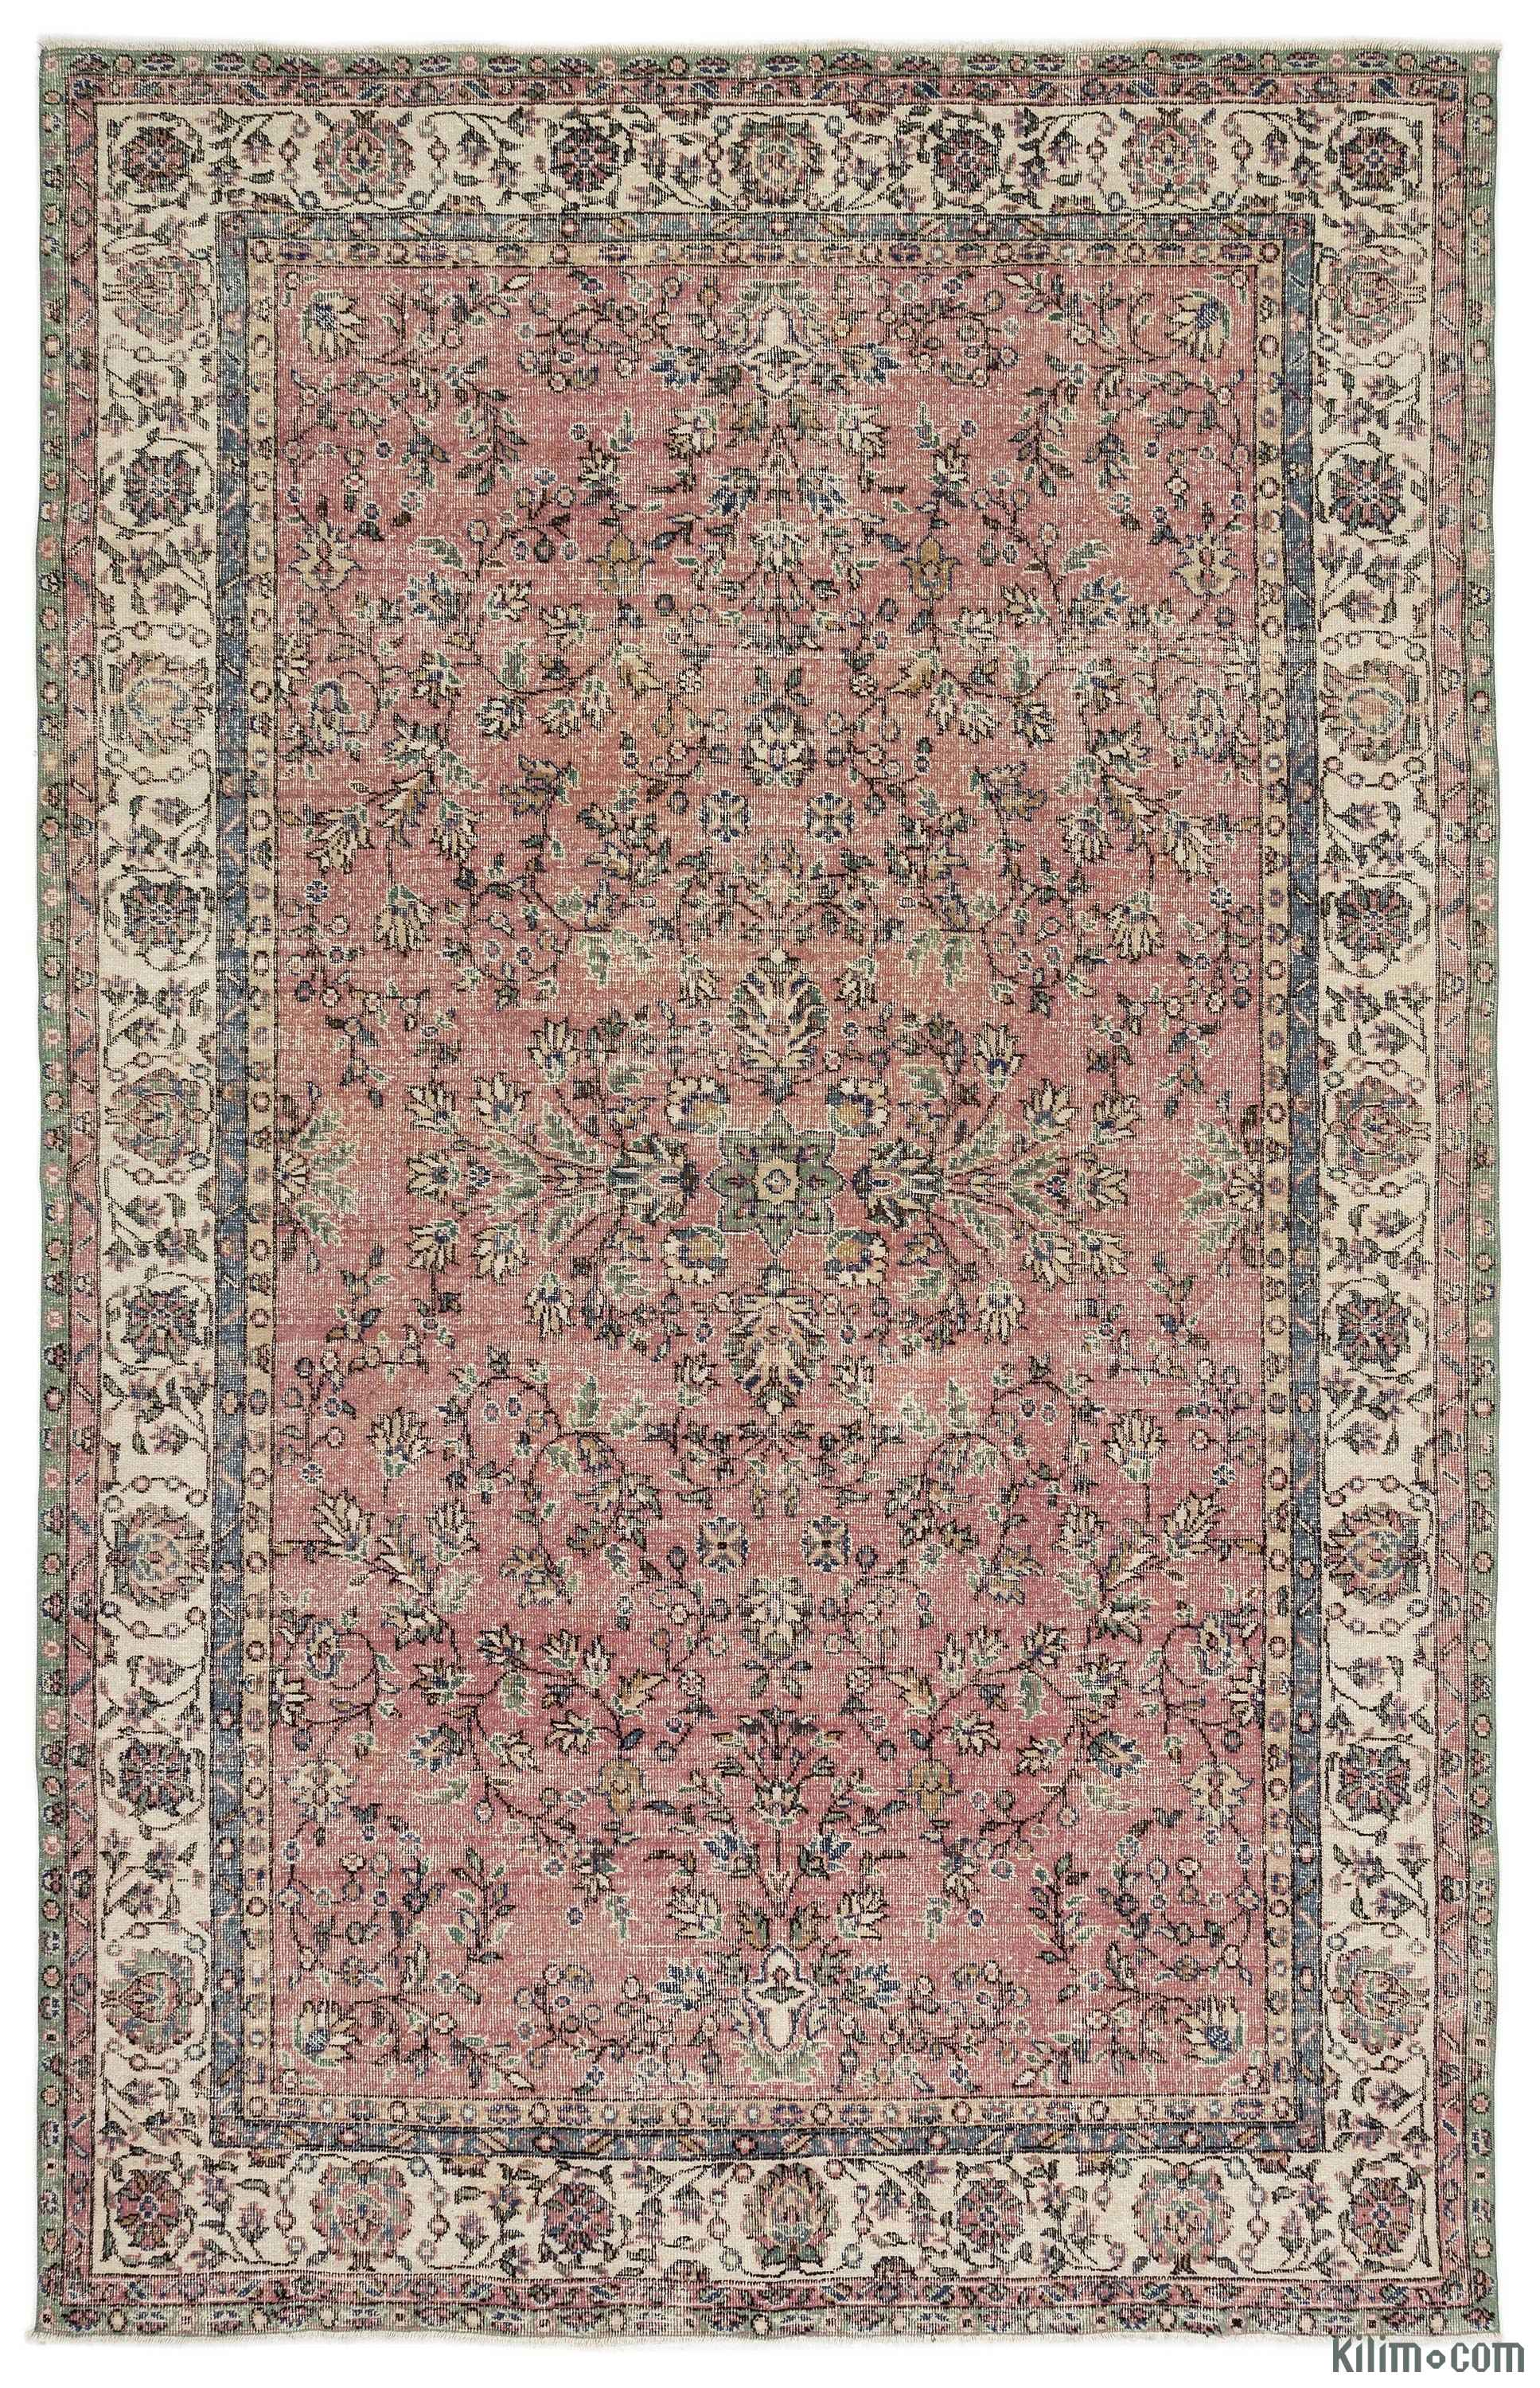 K0014018 Turkish Vintage Area Rug 6 7 Quot X 10 2 Quot 79 In X